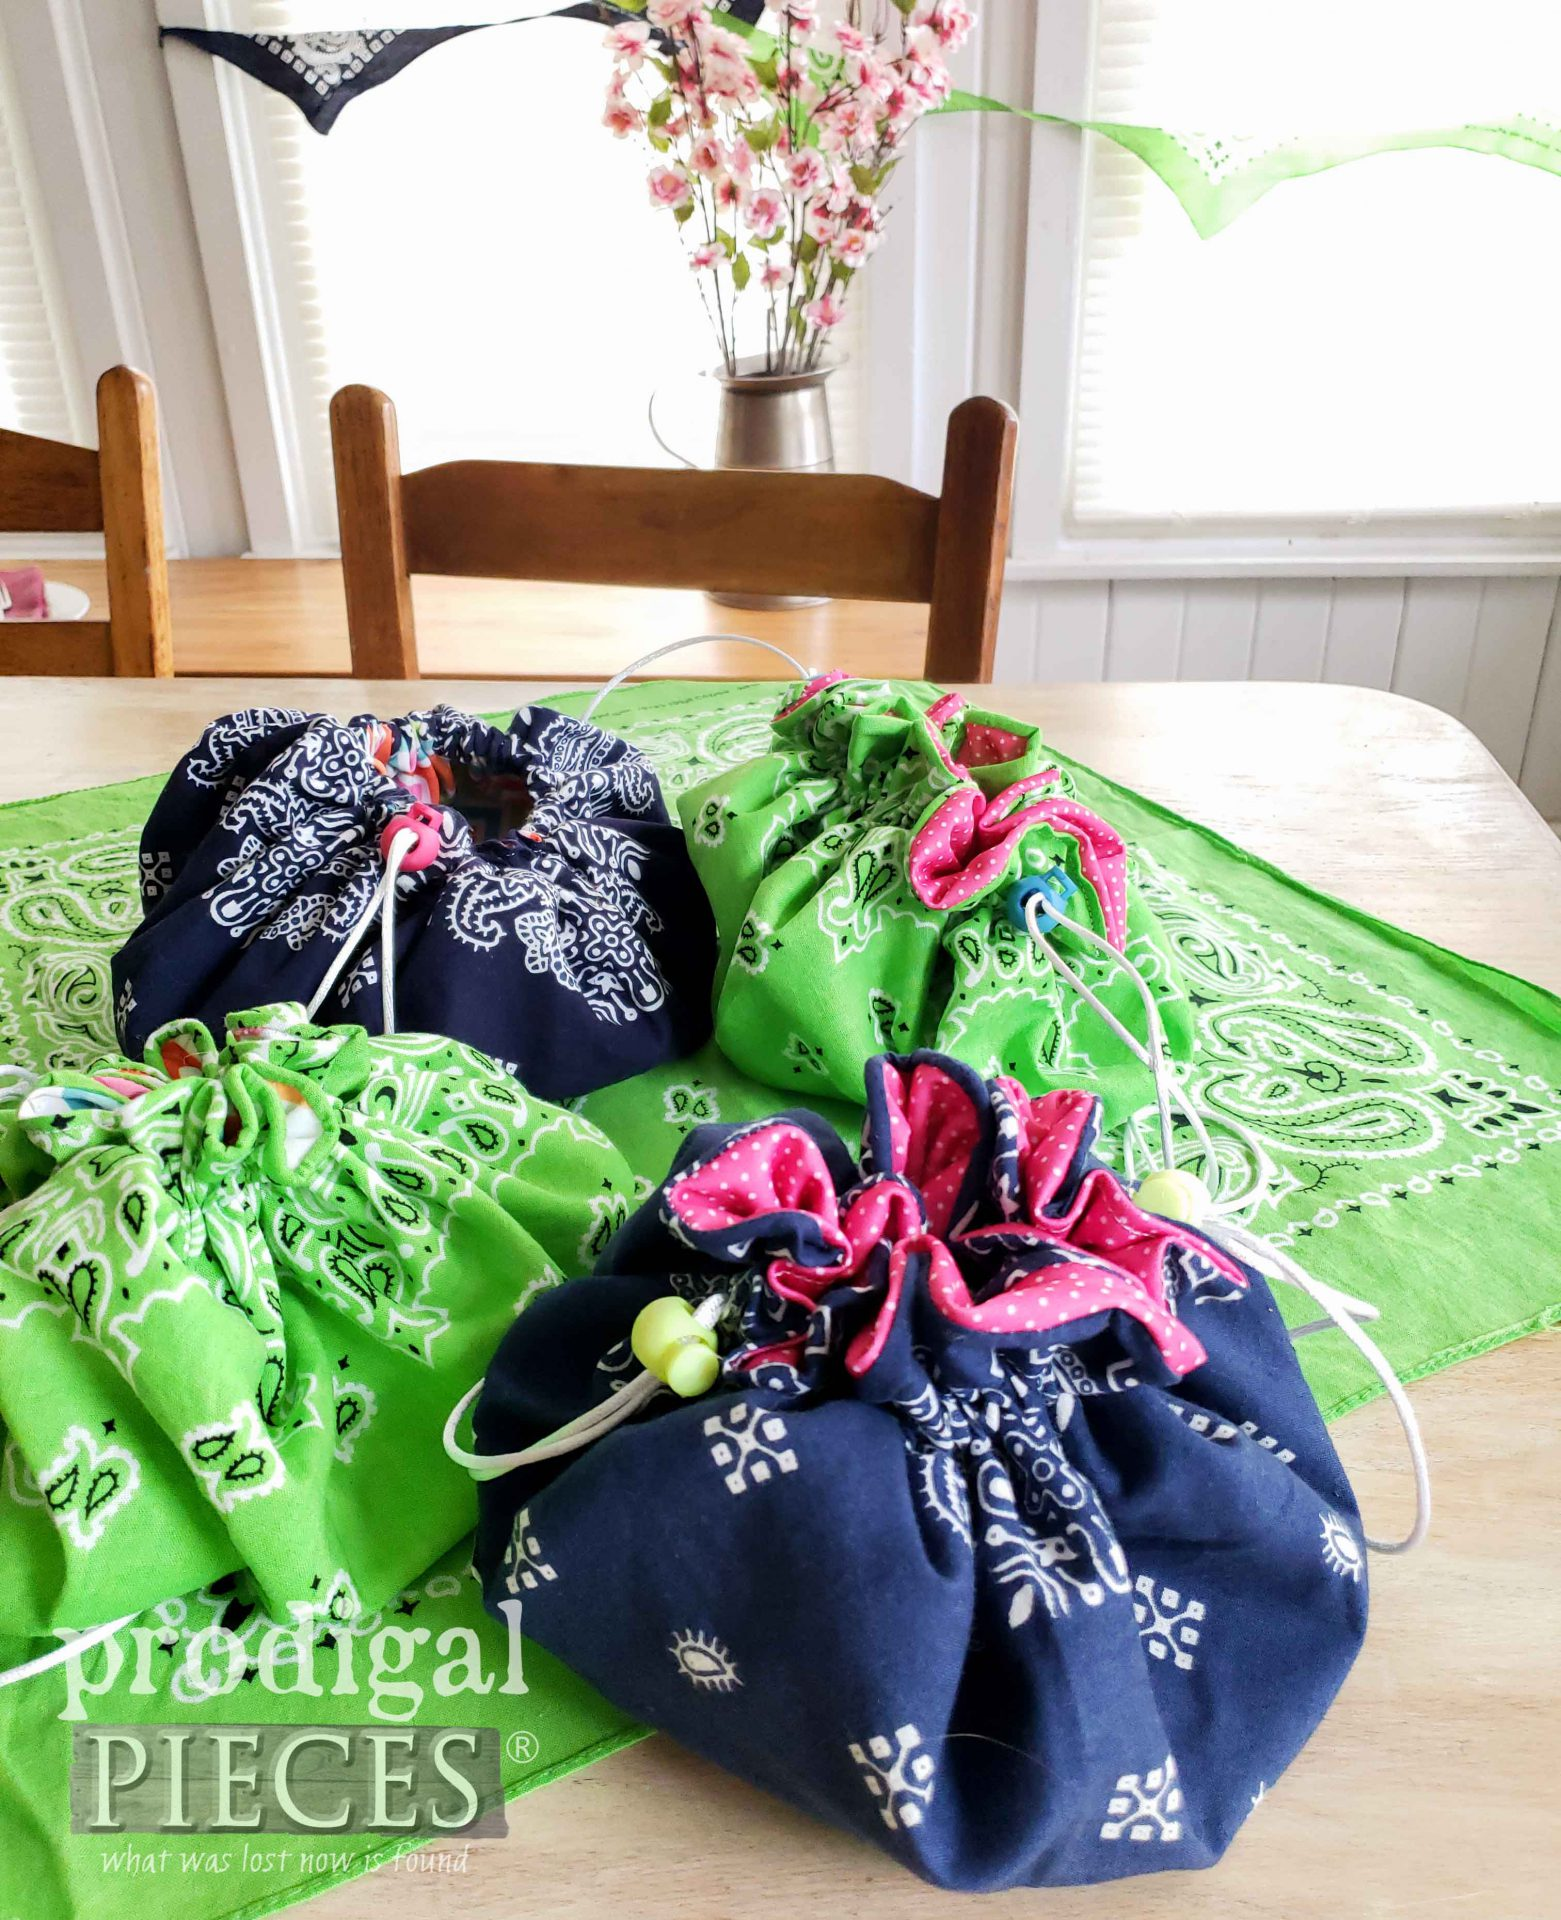 Super Fun Upcycled Drawstring Bags by Larissa of Prodigal Pieces | prodigalpieces.com #prodigalpieces #sewing #upcycle #crafts